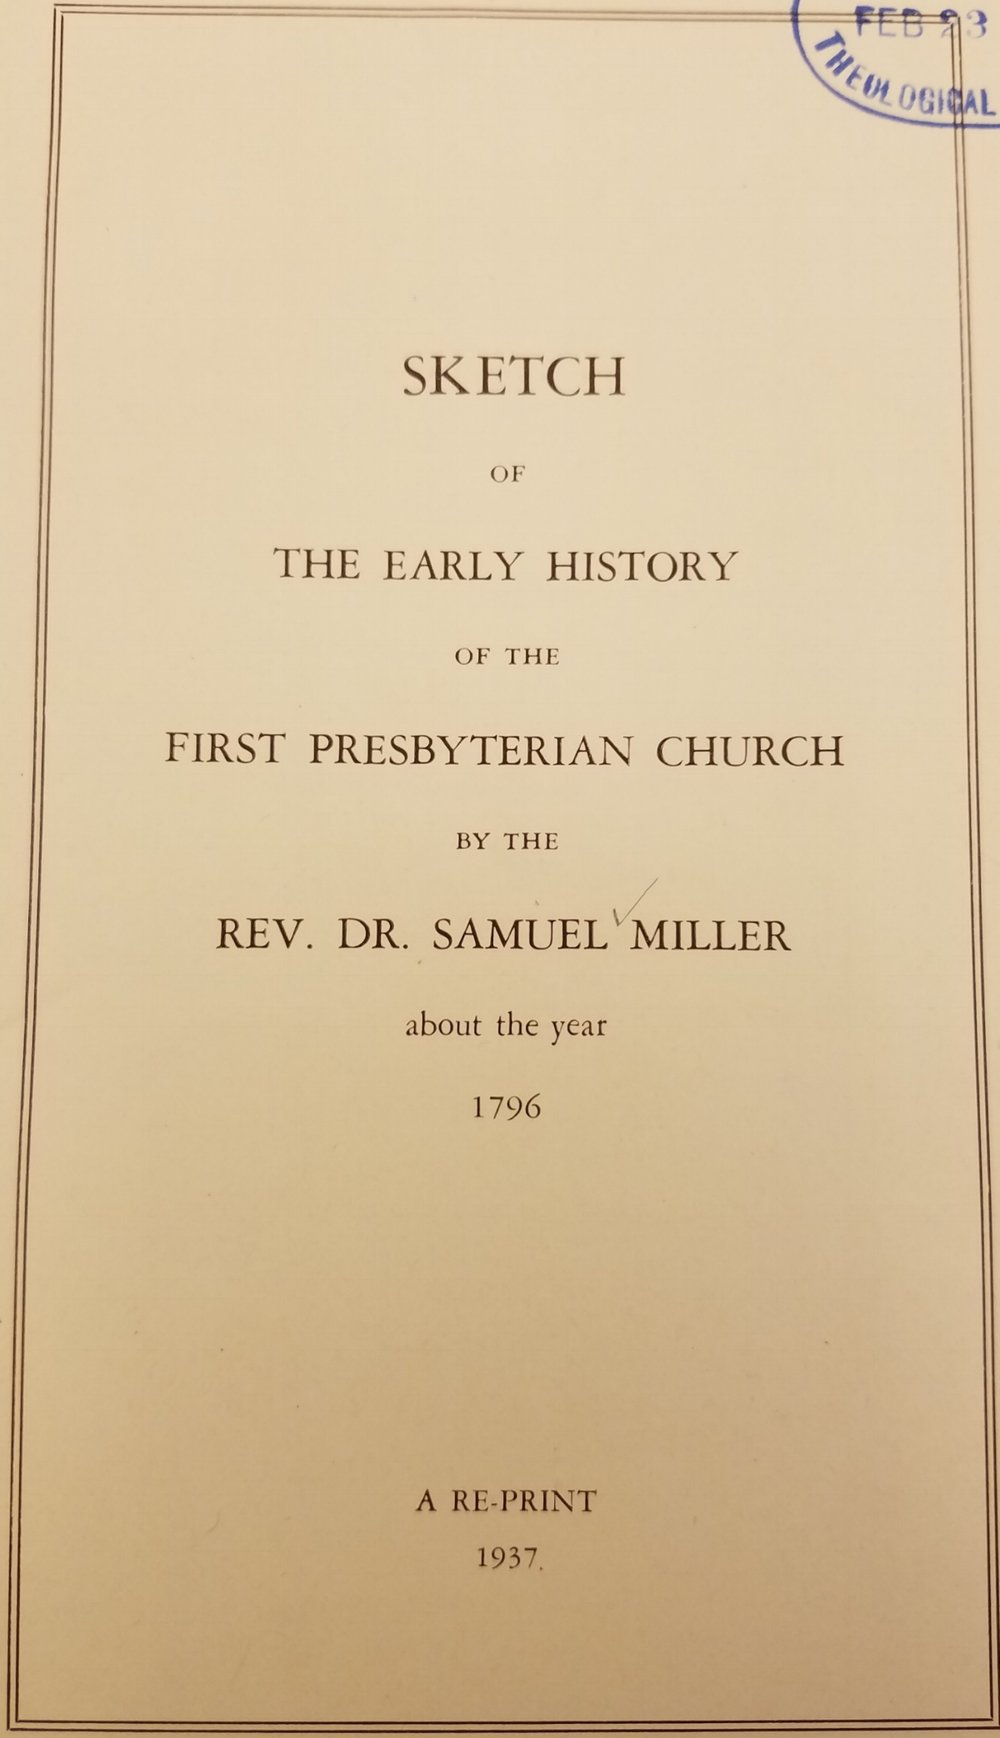 Miller, Samuel, Sketch of the Early History of the First Presbyterian Church Title Page.jpg